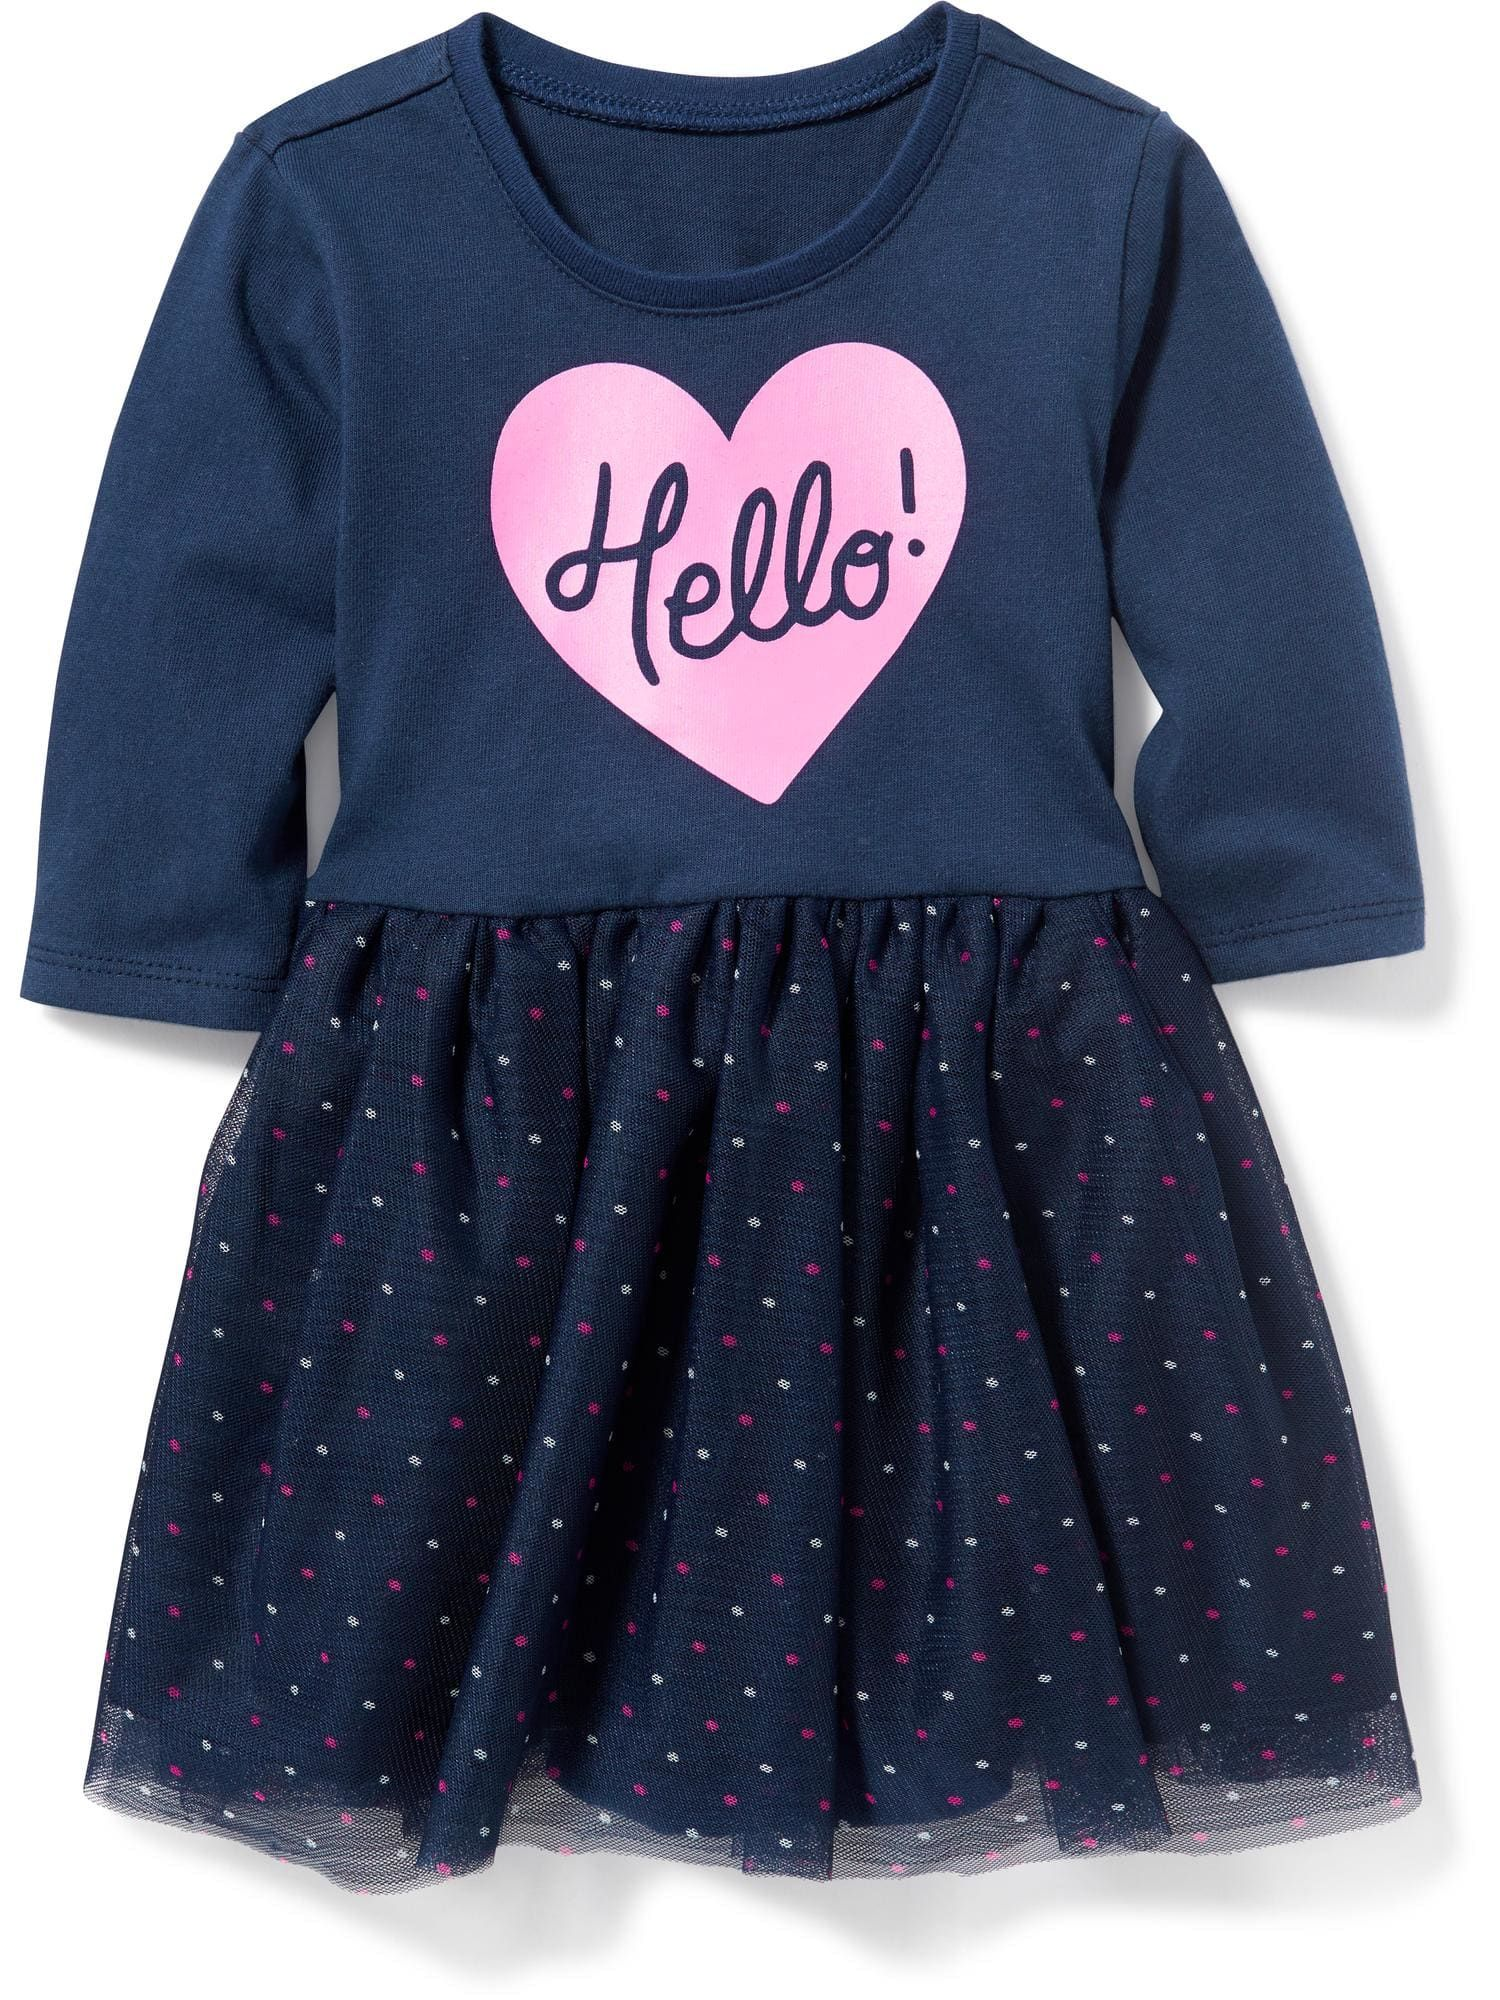 Graphic Tutu Dress for Baby Old Navy Nana s Girl